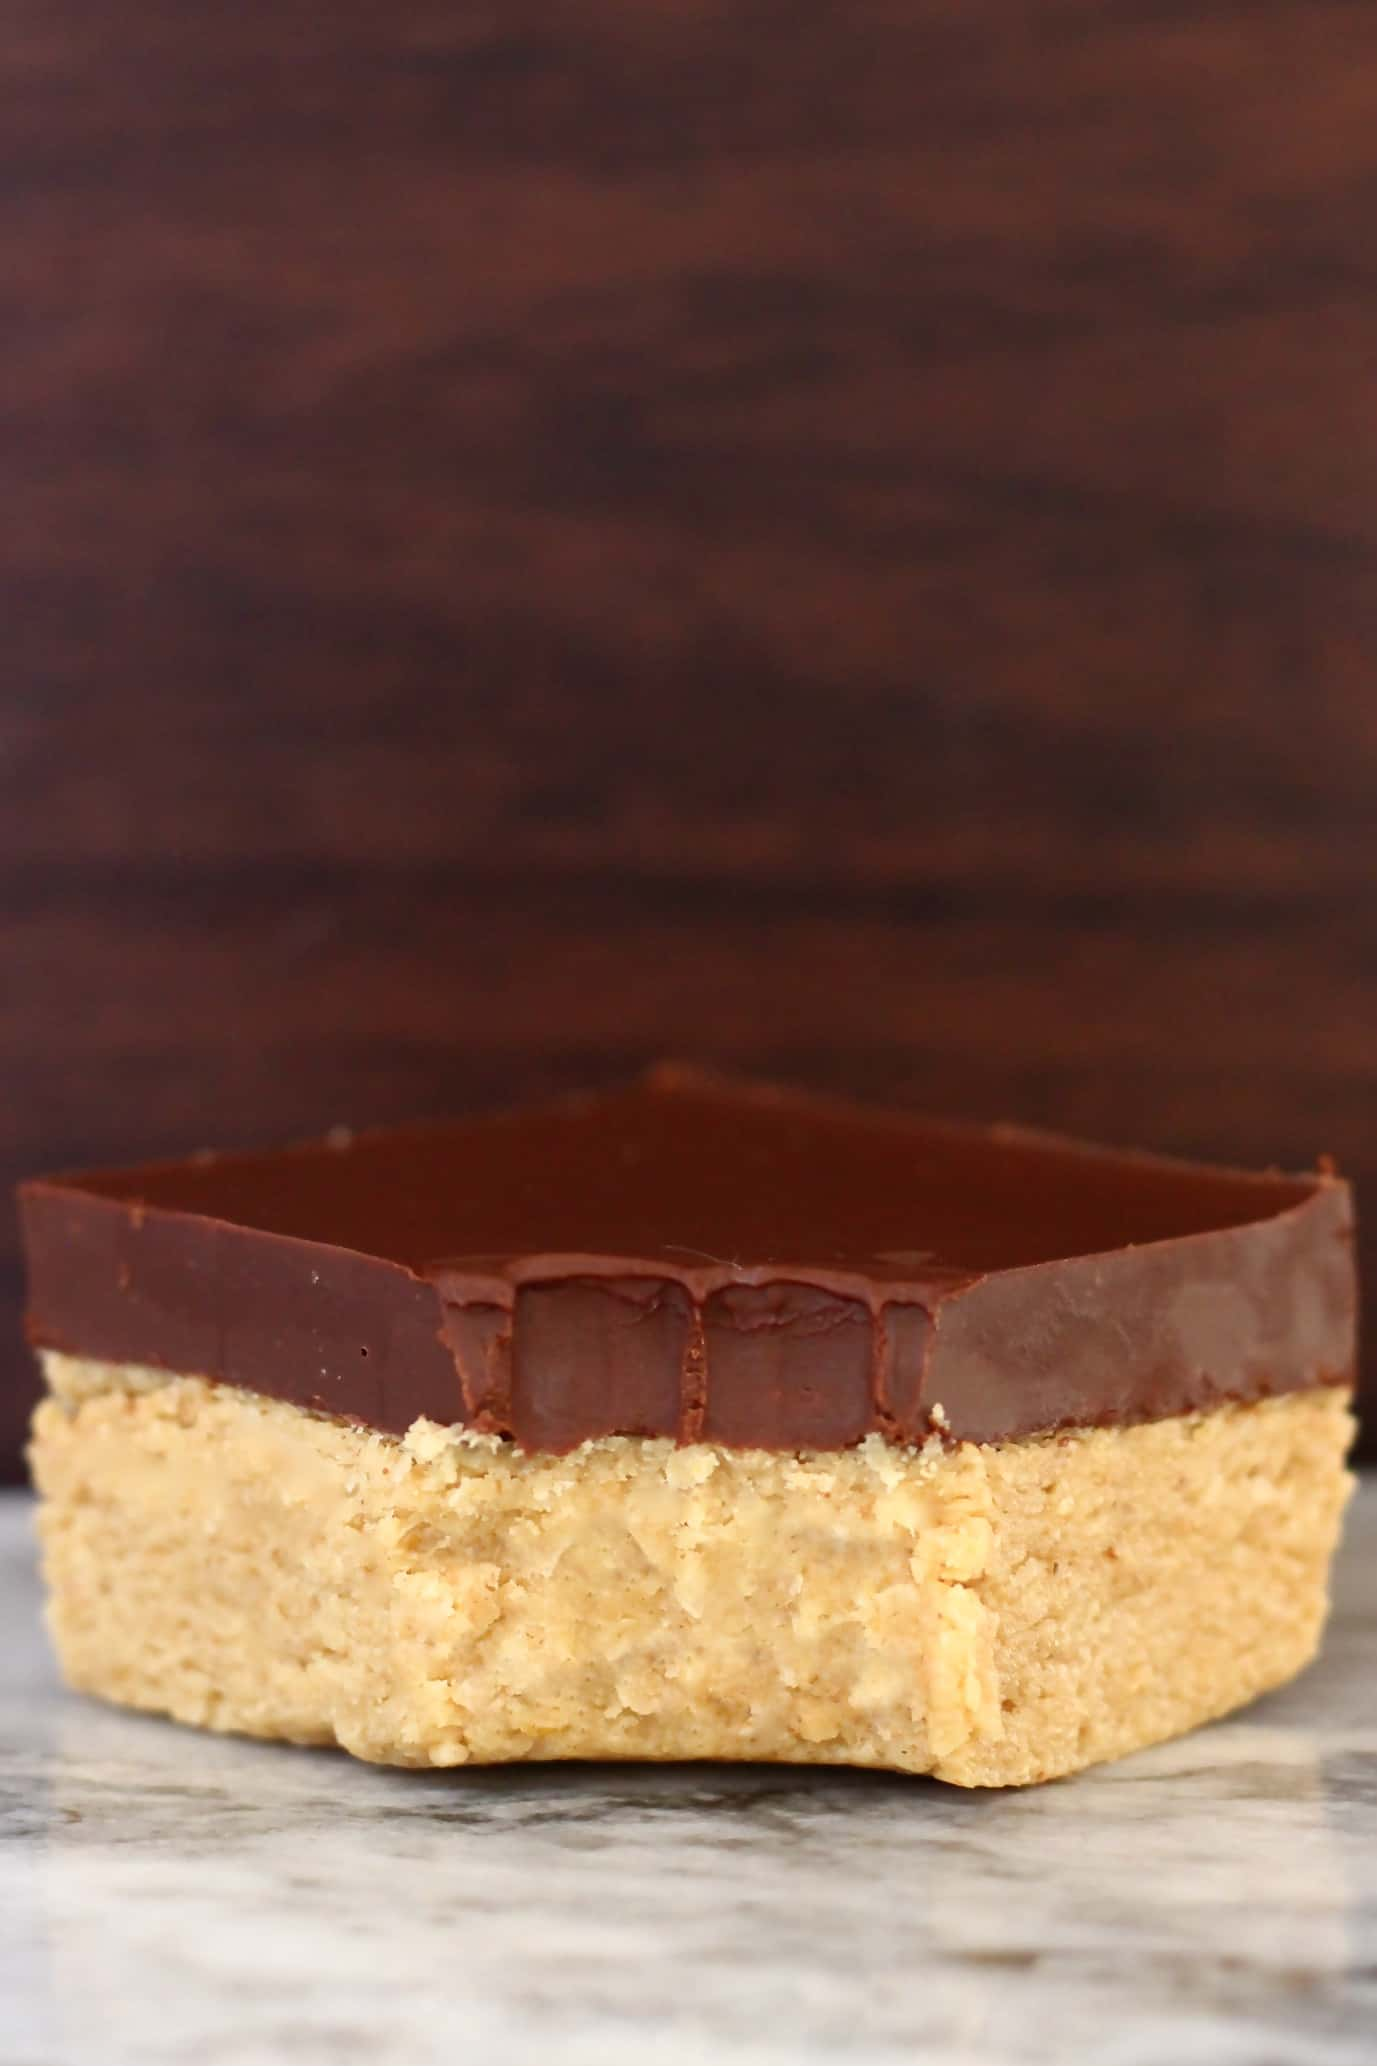 A vegan chocolate peanut butter bar topped with dark chocolate with a bite taken out of it